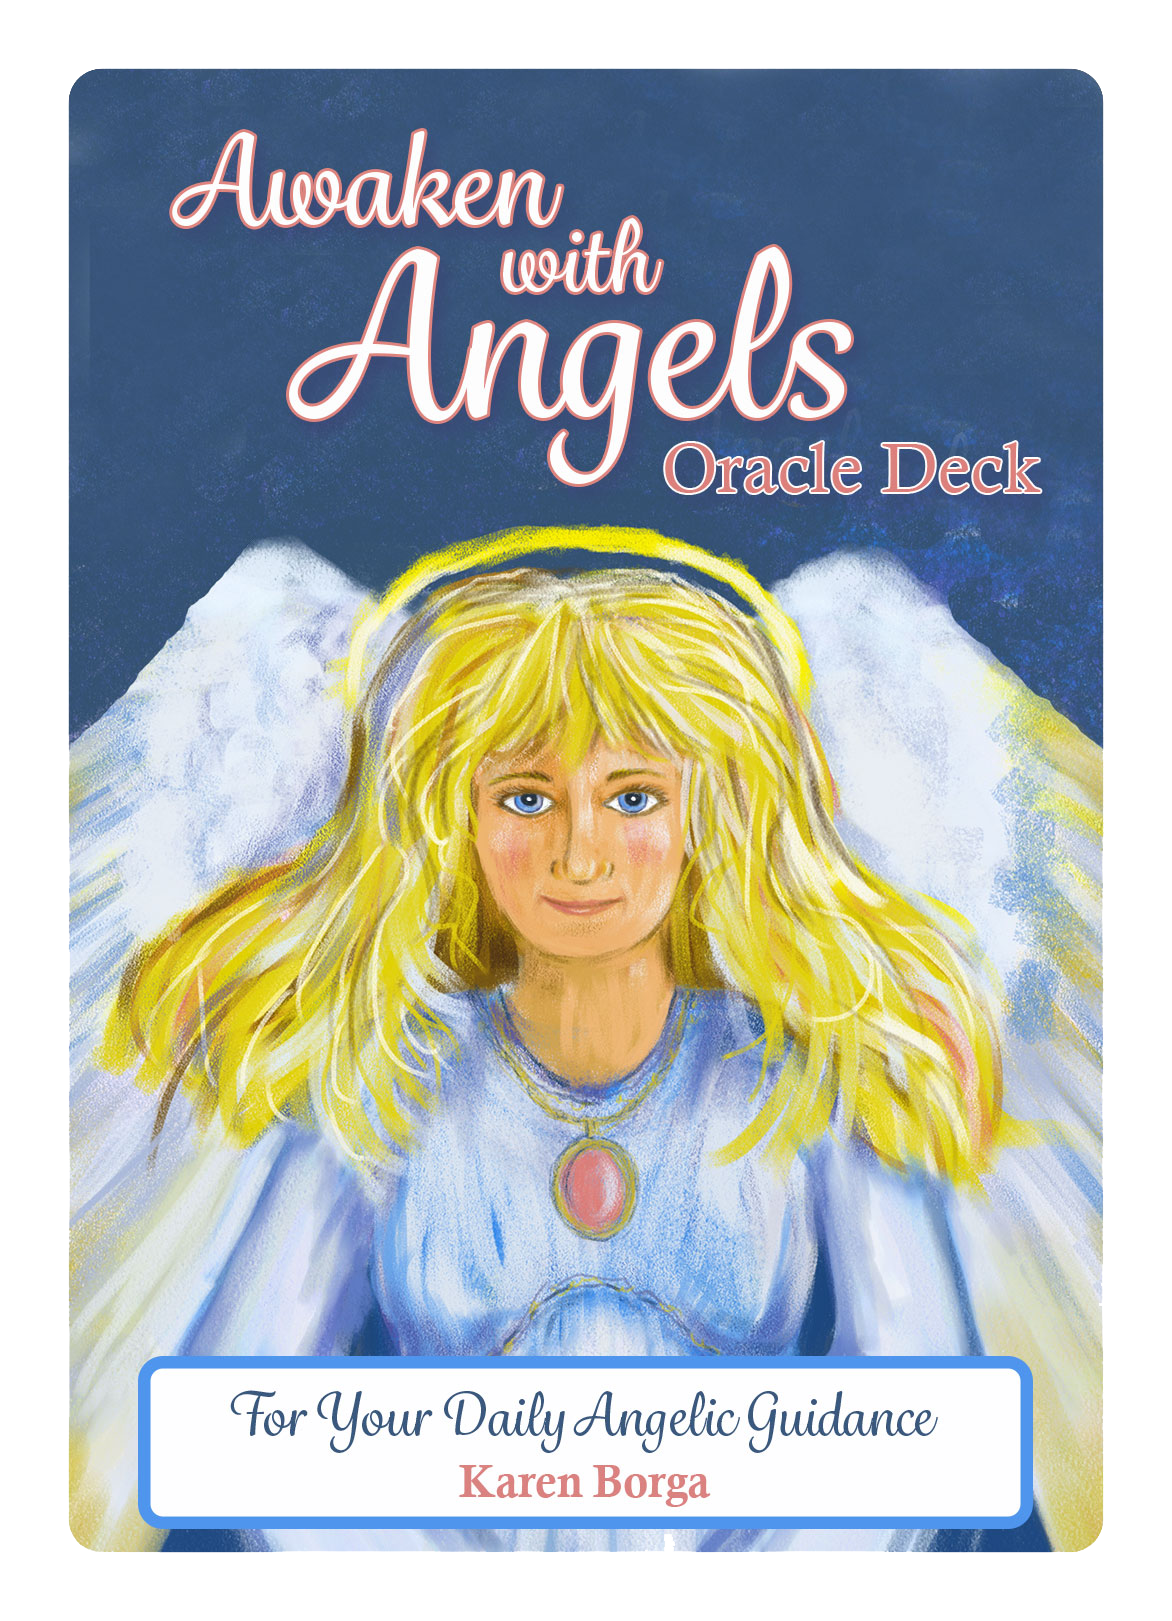 Daily Angel Oracle Card Celebration From The Guardian: Daily Inspirational Messages